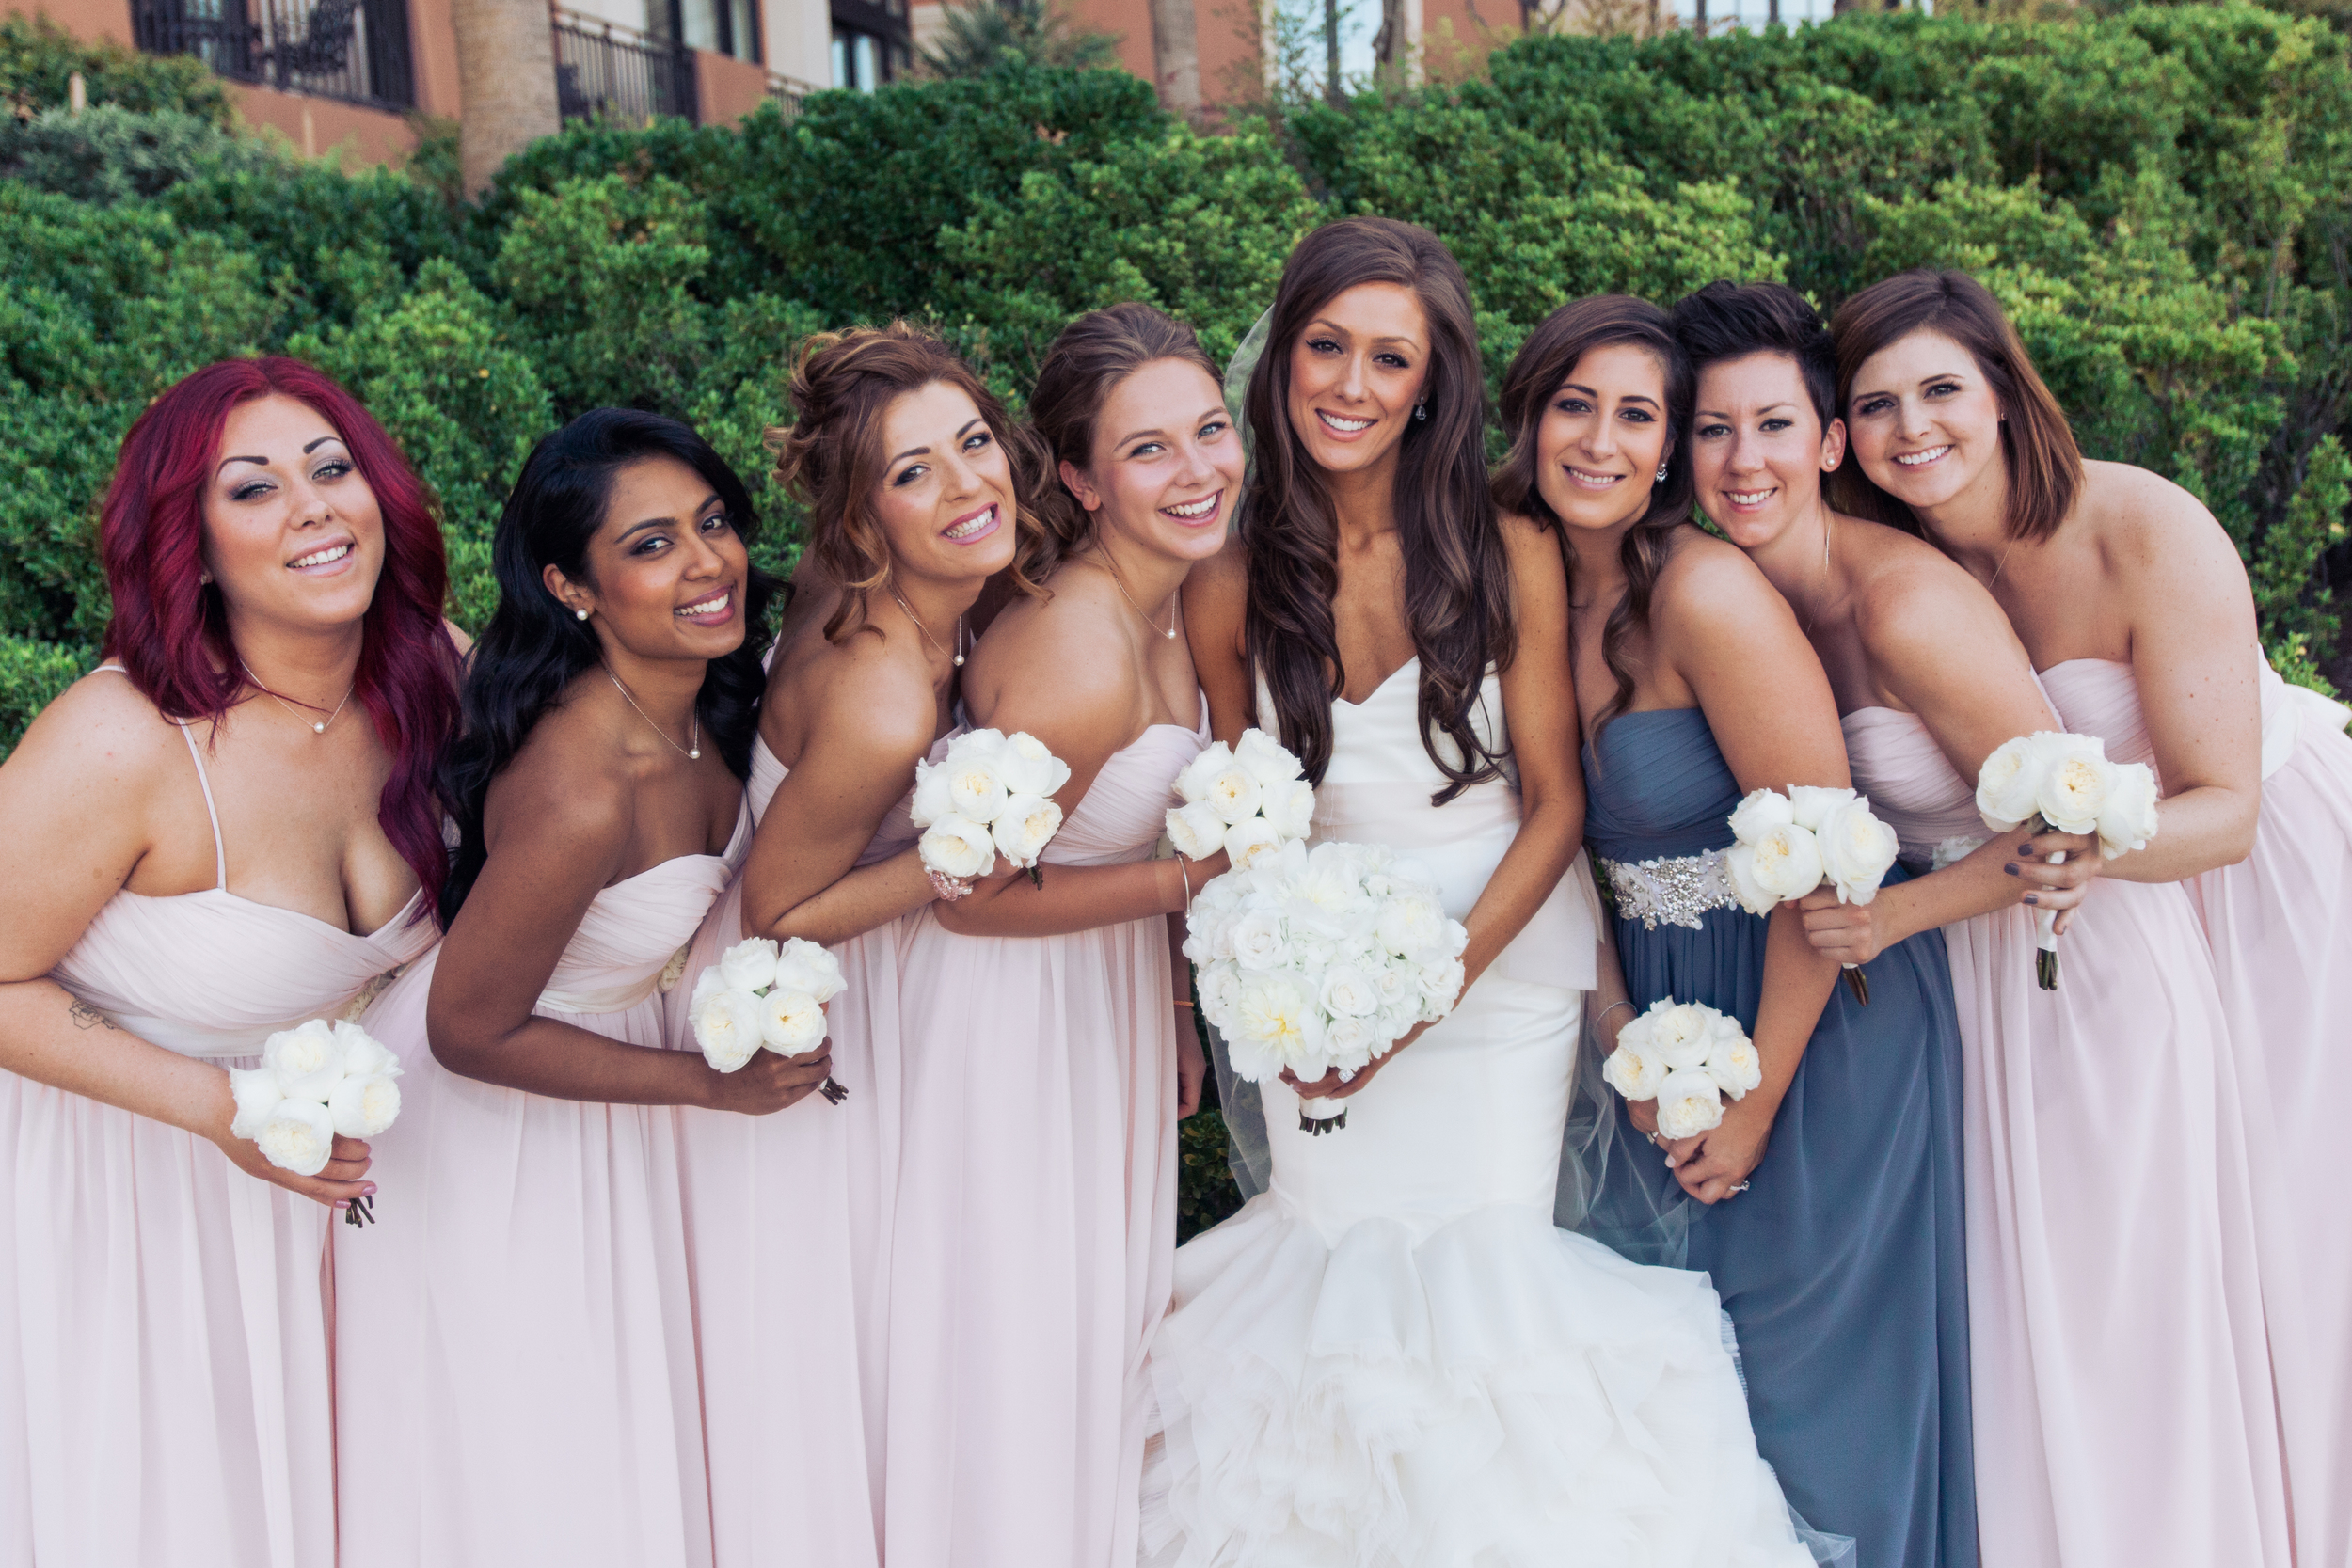 The bridesmaids wore pretty pastels and carried small nosegay bouquets of ivory roses.    Las Vegas Wedding Planner Andrea Eppolito   Wedding at Lake Las Vegas   White and Blu  sh and Grey Wedding   Luxury Wedding Las Vegas